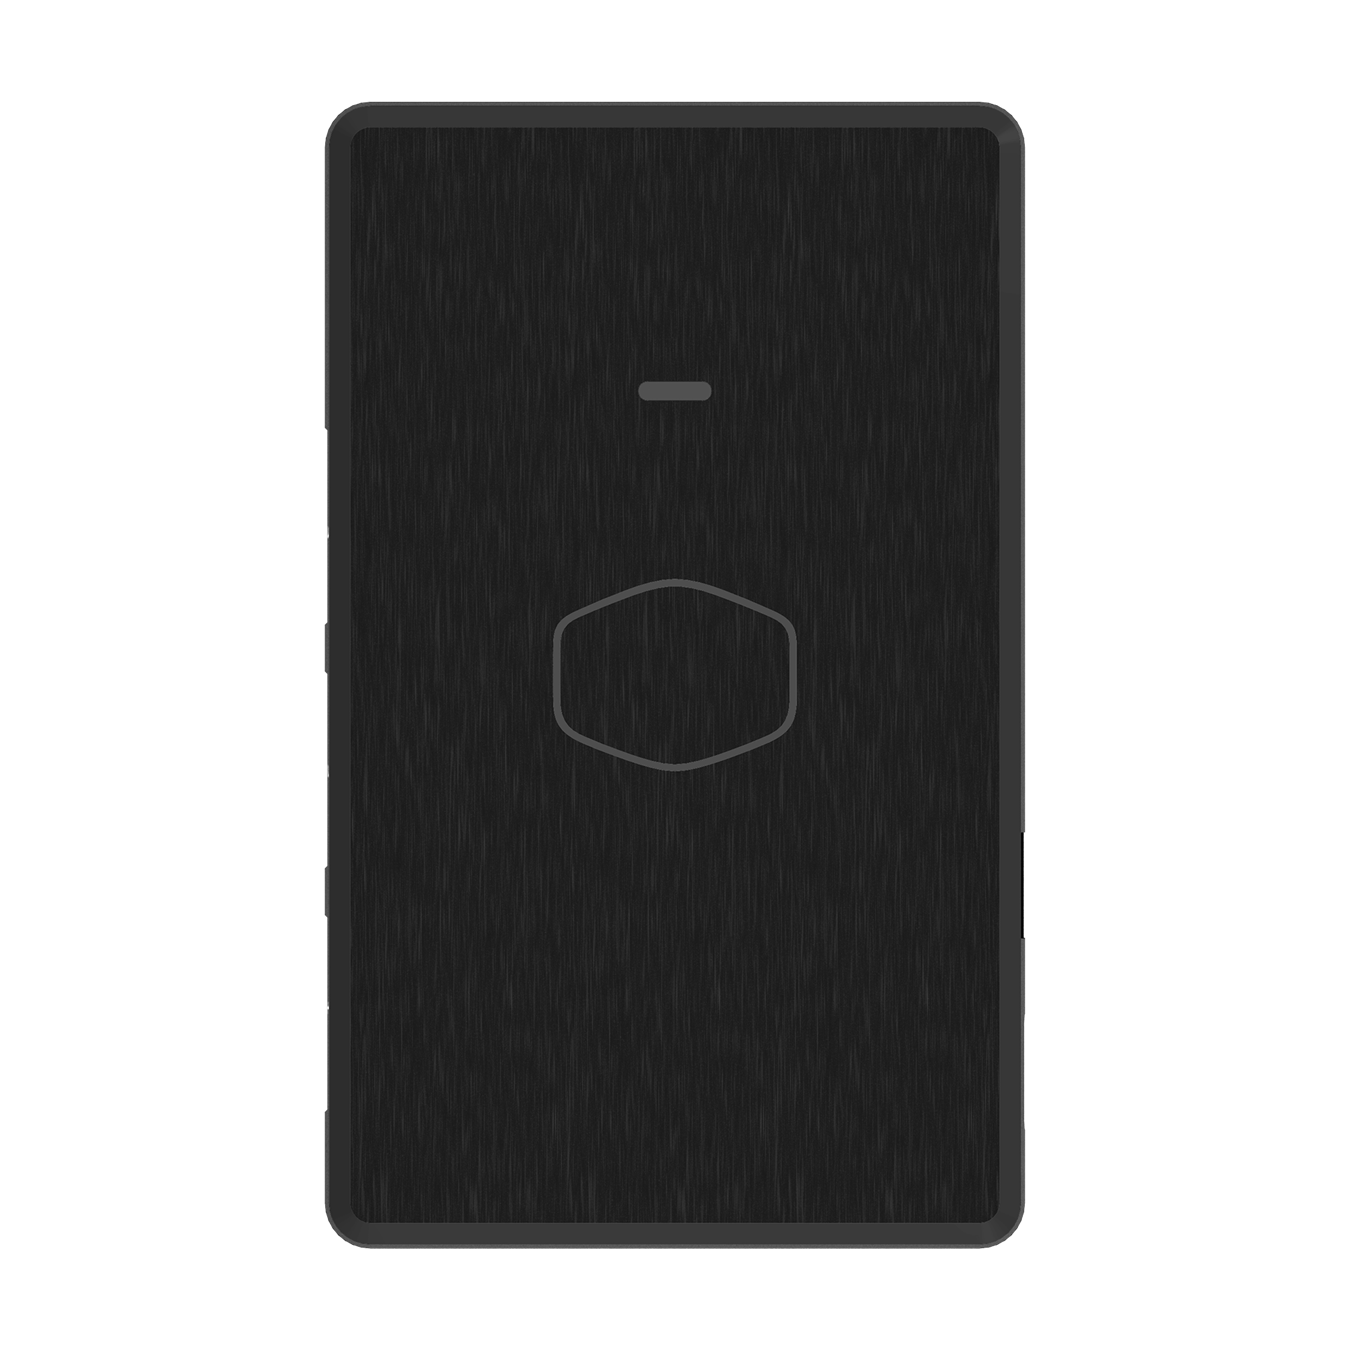 Compatible with both Gen 2 ARGB and standard ARGB devices, connect all your devices with the simple touch of a button